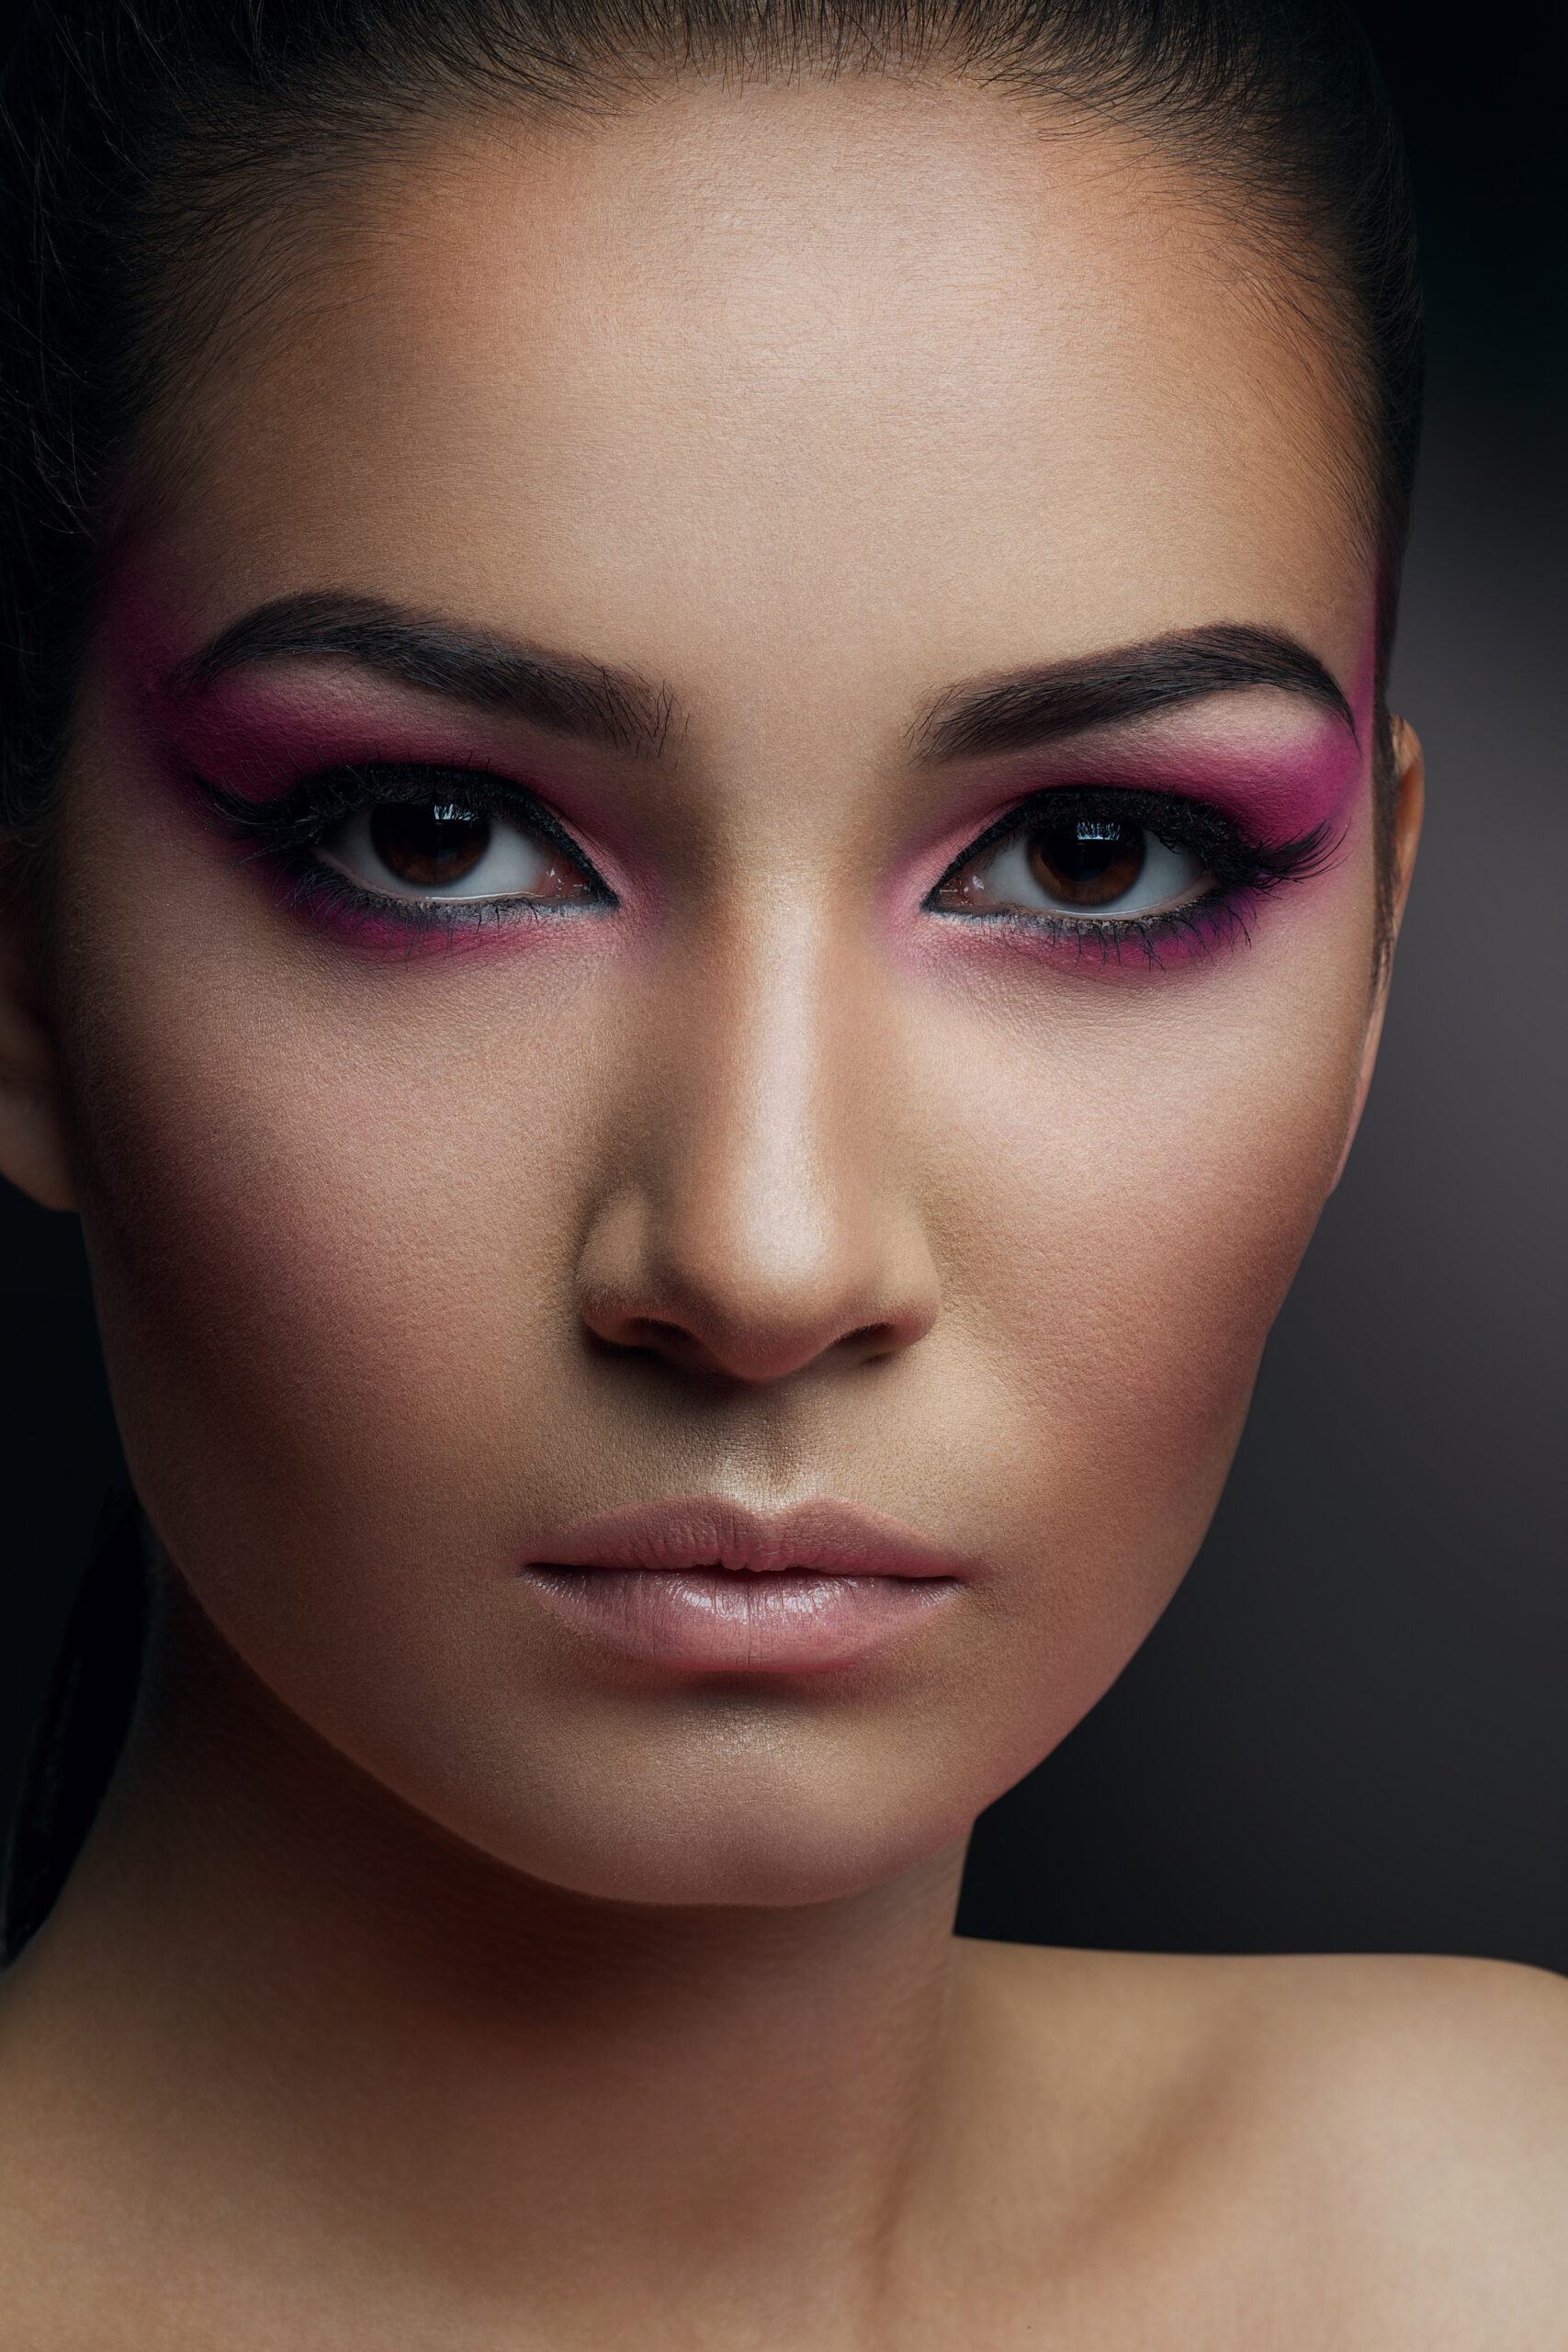 Woman's face, Revision Rhinoplasty - model